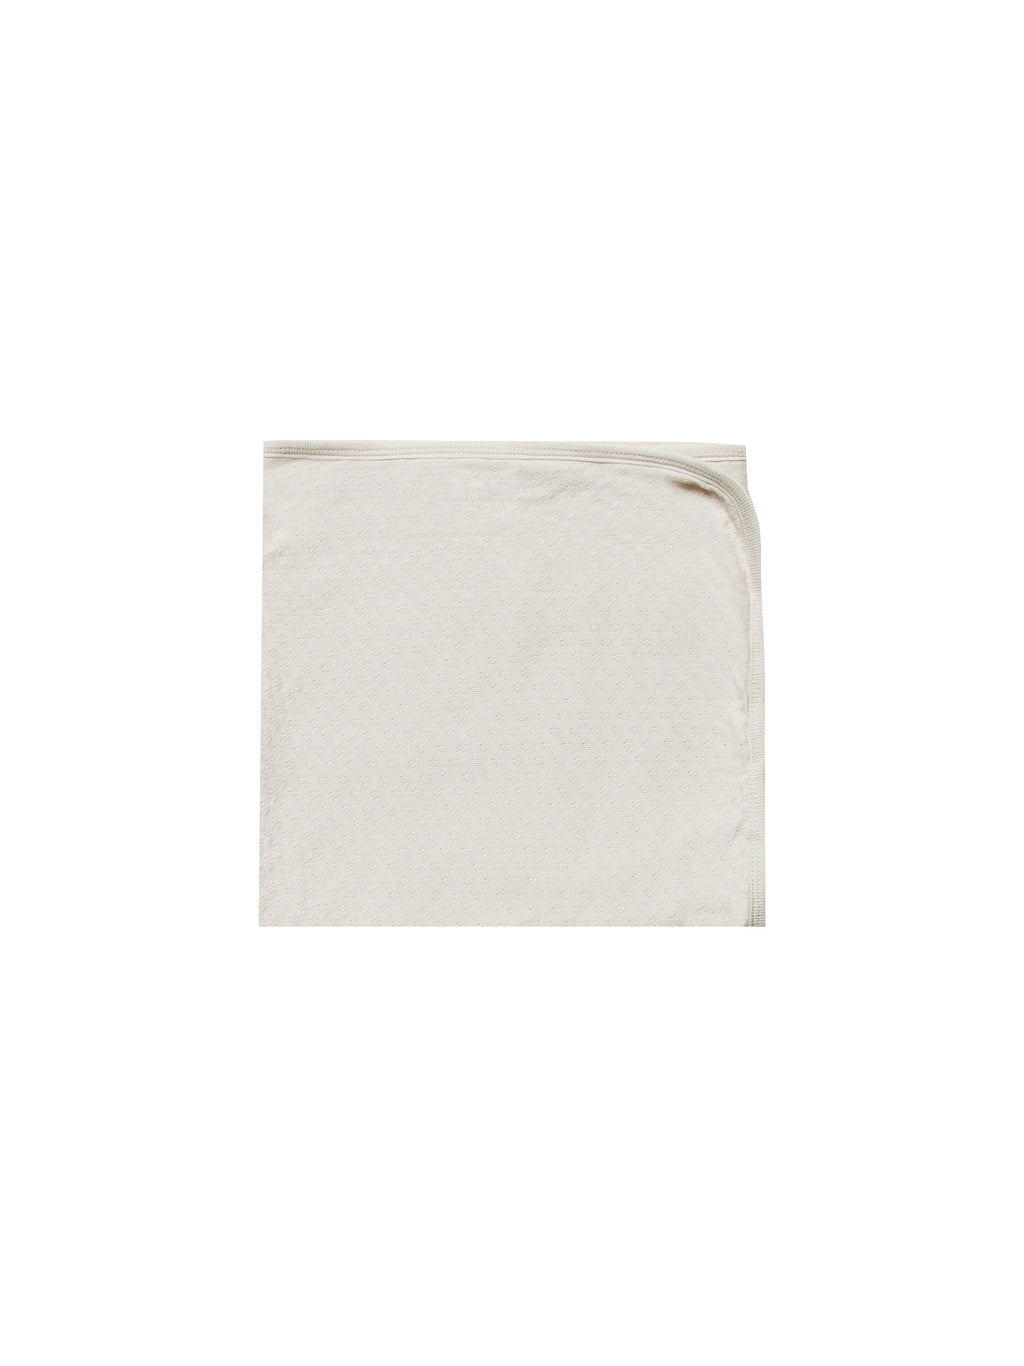 Quincy Mae - Pointelle Baby Blanket (Pebble)